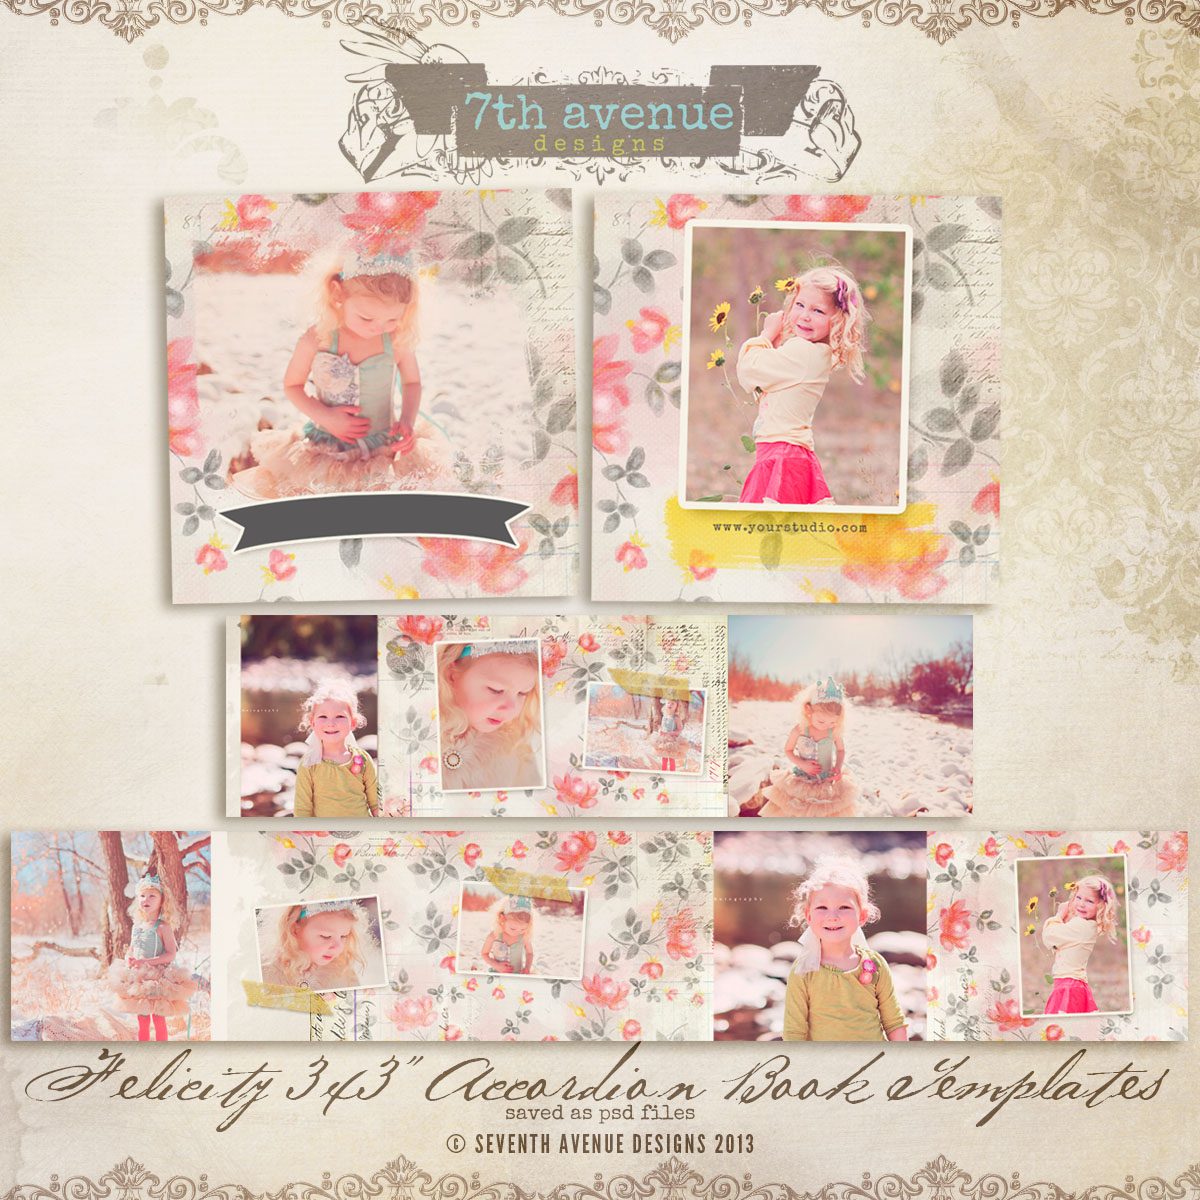 Felicity 3x3 Accordion mini templates